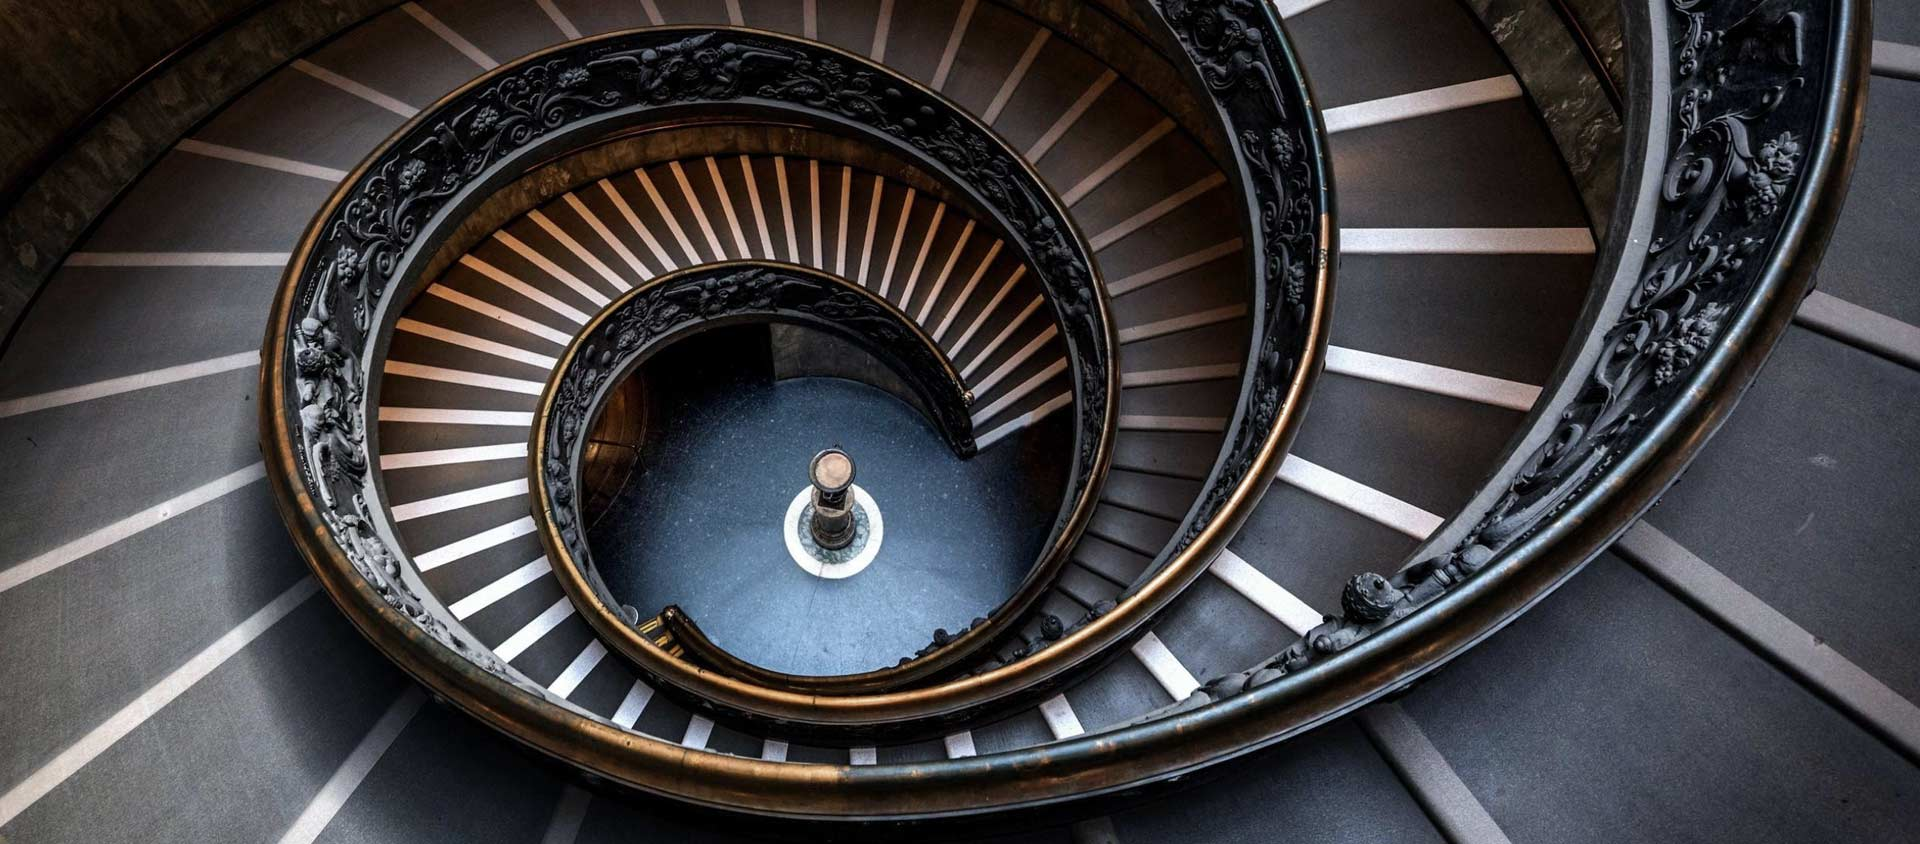 The Winding Staircase